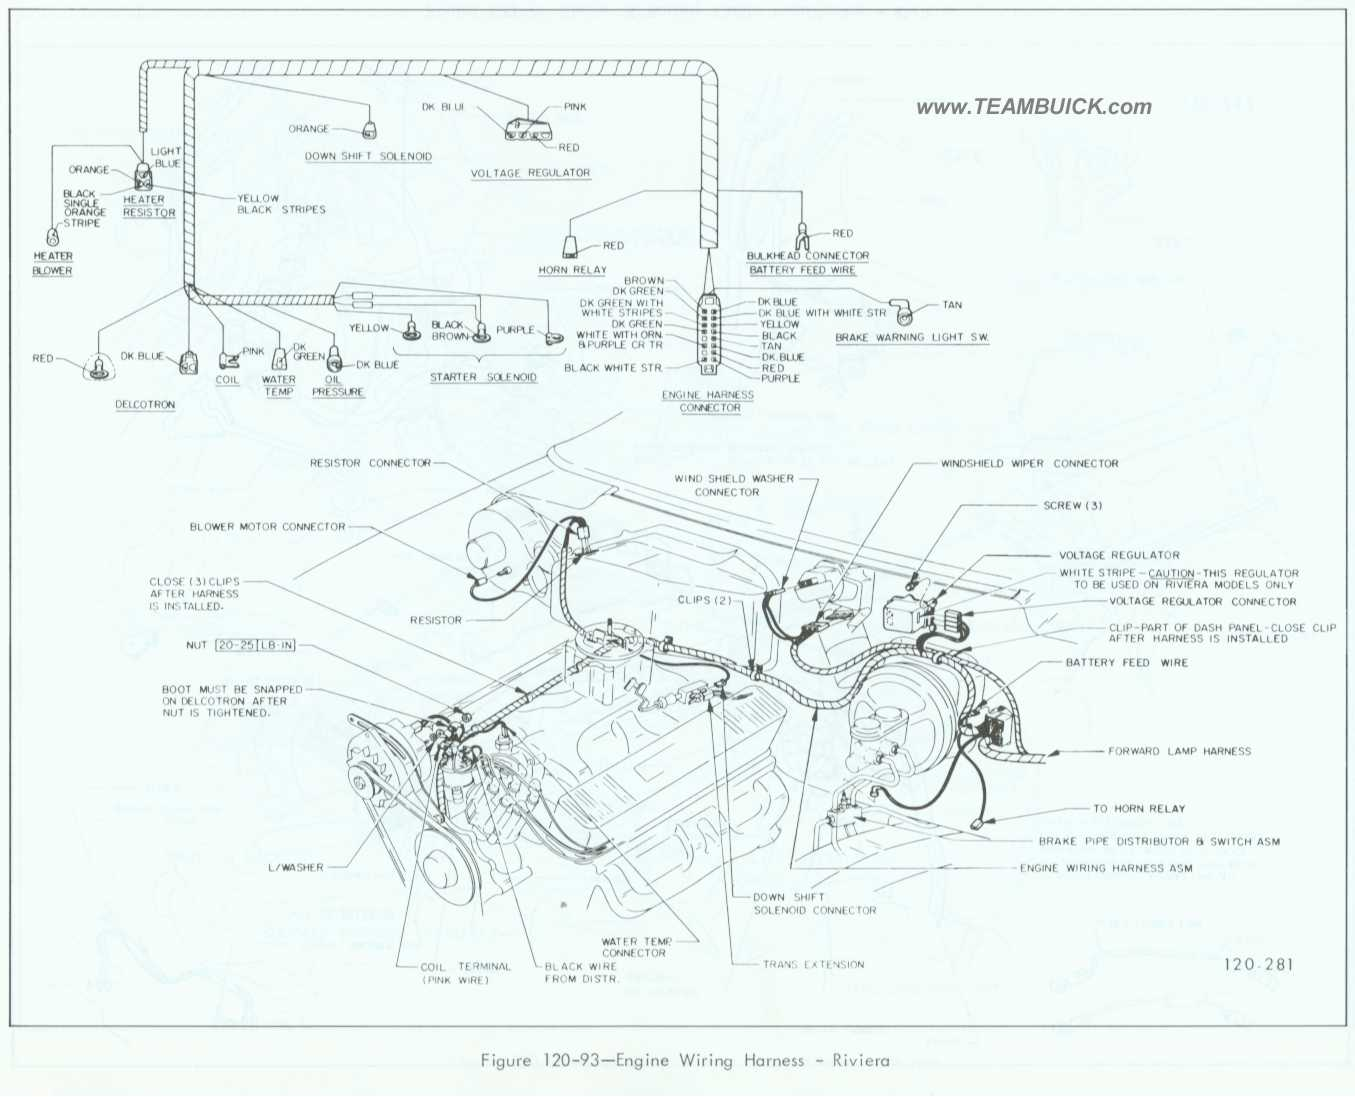 1967 Engine Wiring Diagram Opinions About 67 Mustang Buick Riviera Harness Rh Teambuick Com Gto